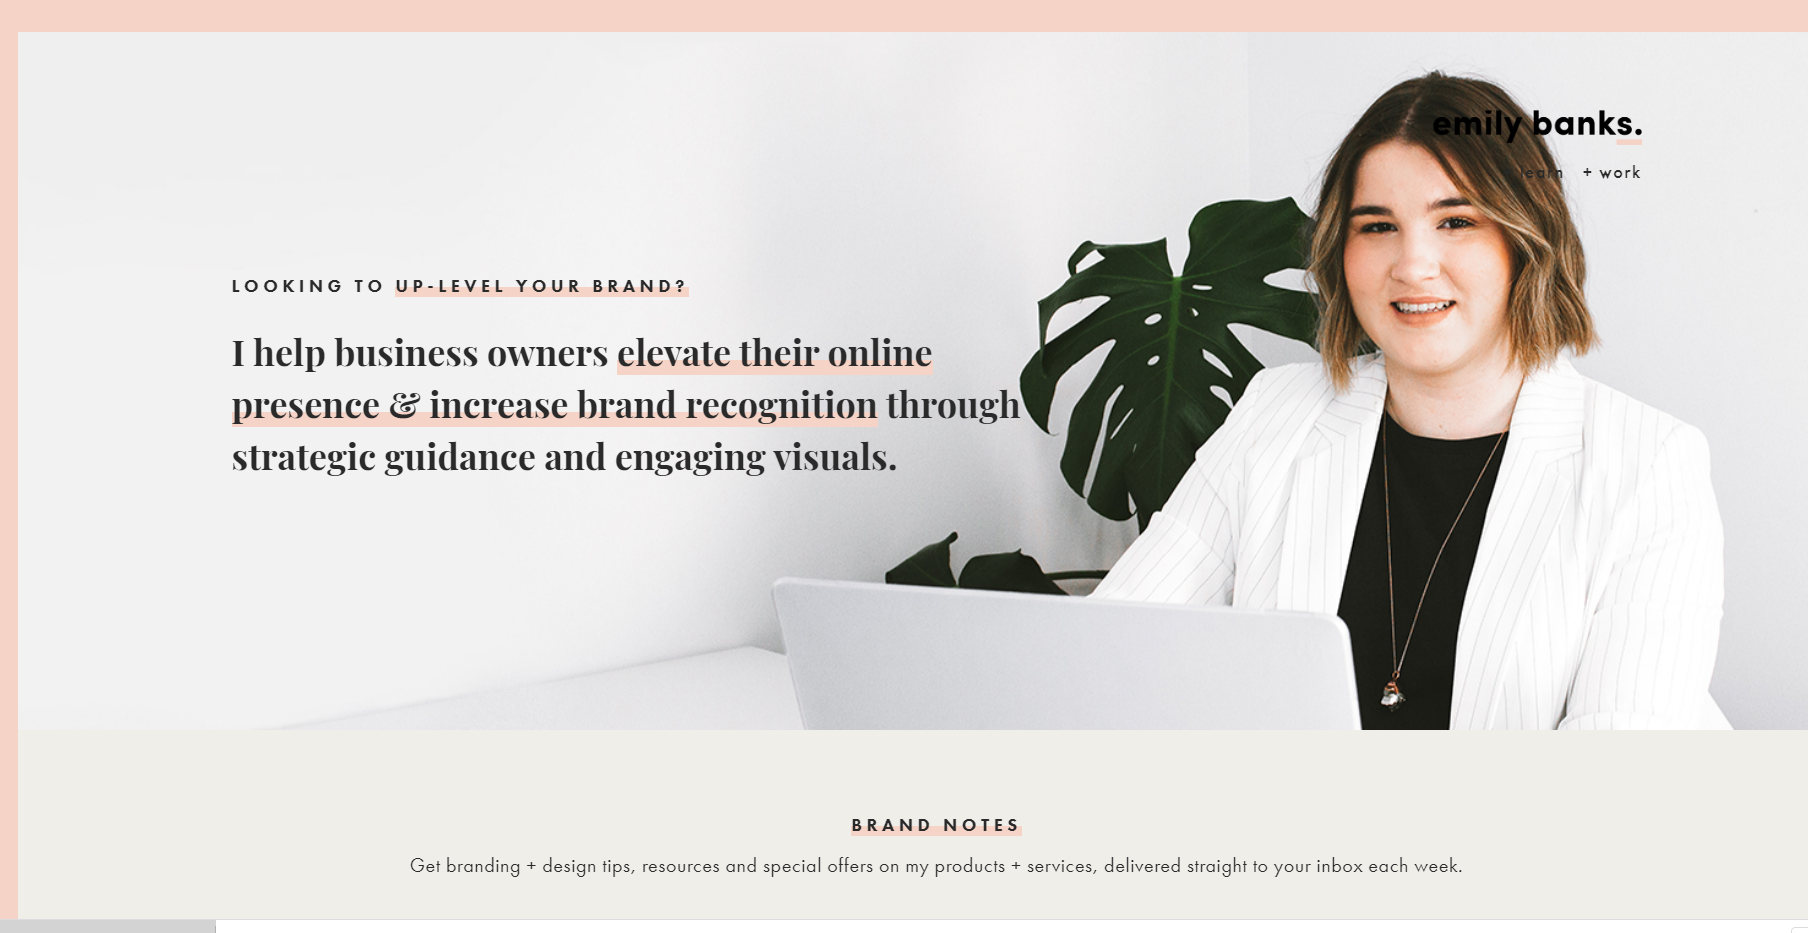 Screen shot from landing page featuring text: Looking to up-level your brand? I help business owners elevate their online presence & increase brand recognition through strategic guidance and engaging visuals. With image of Emily Banks.